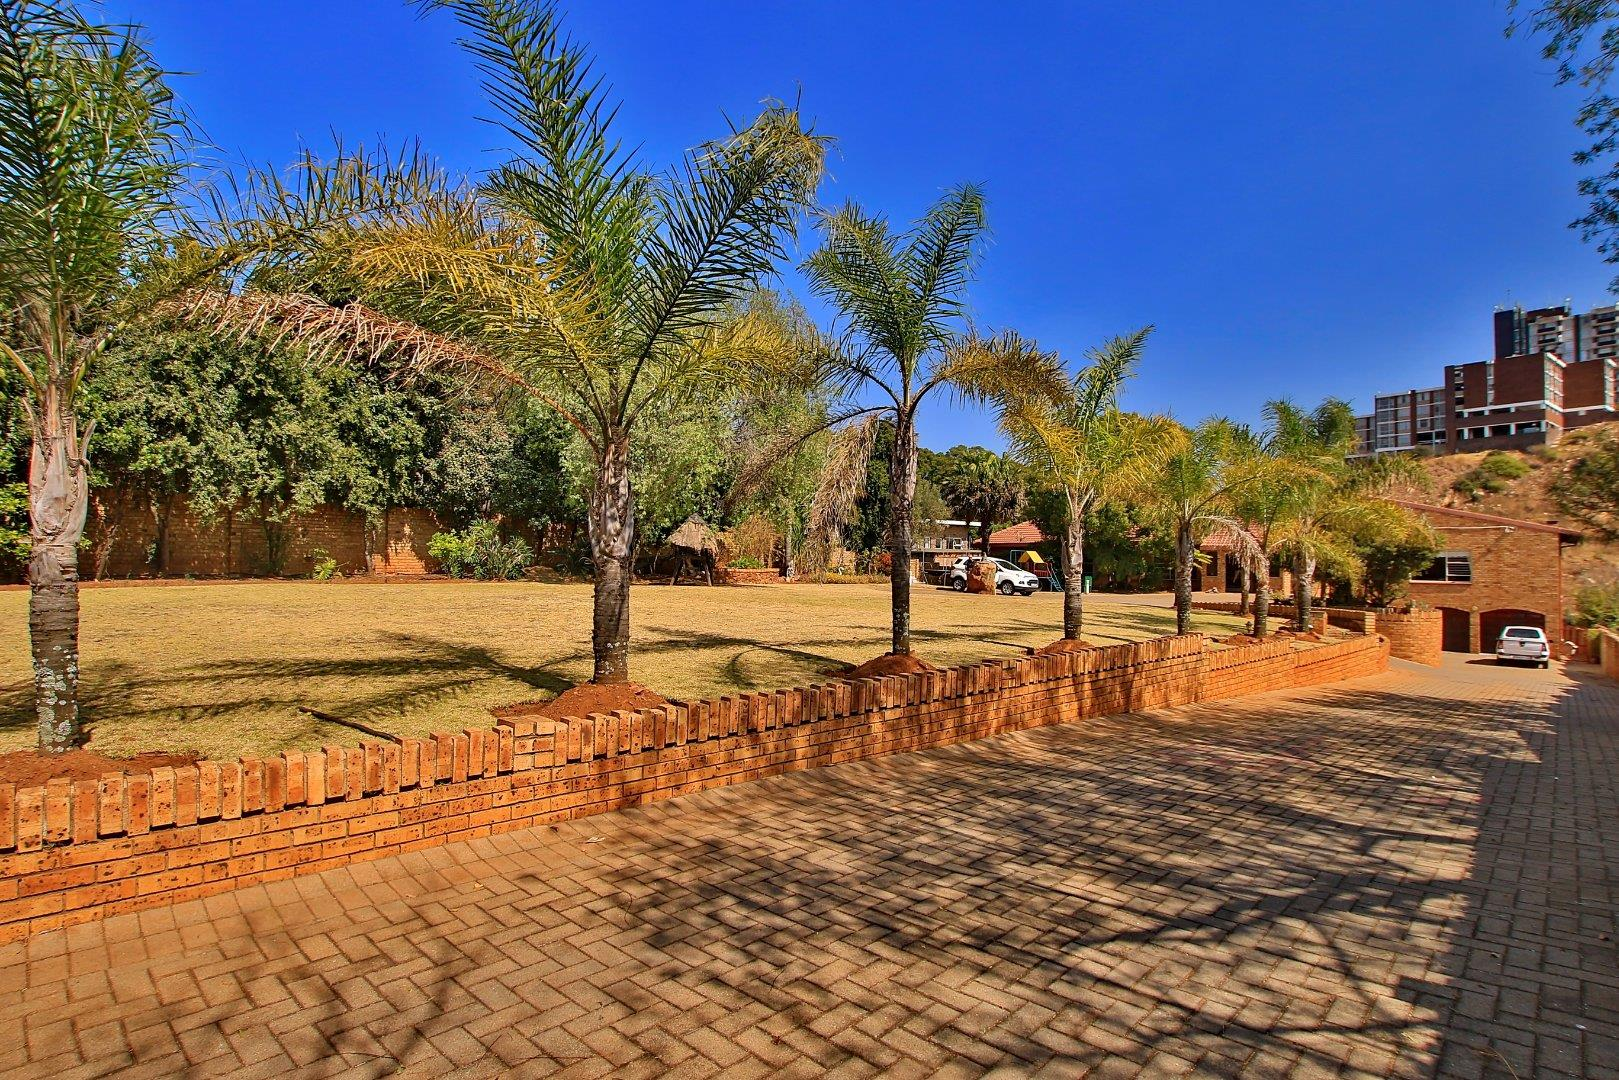 7 Bedroom  House for Sale in Roodepoort - Gauteng